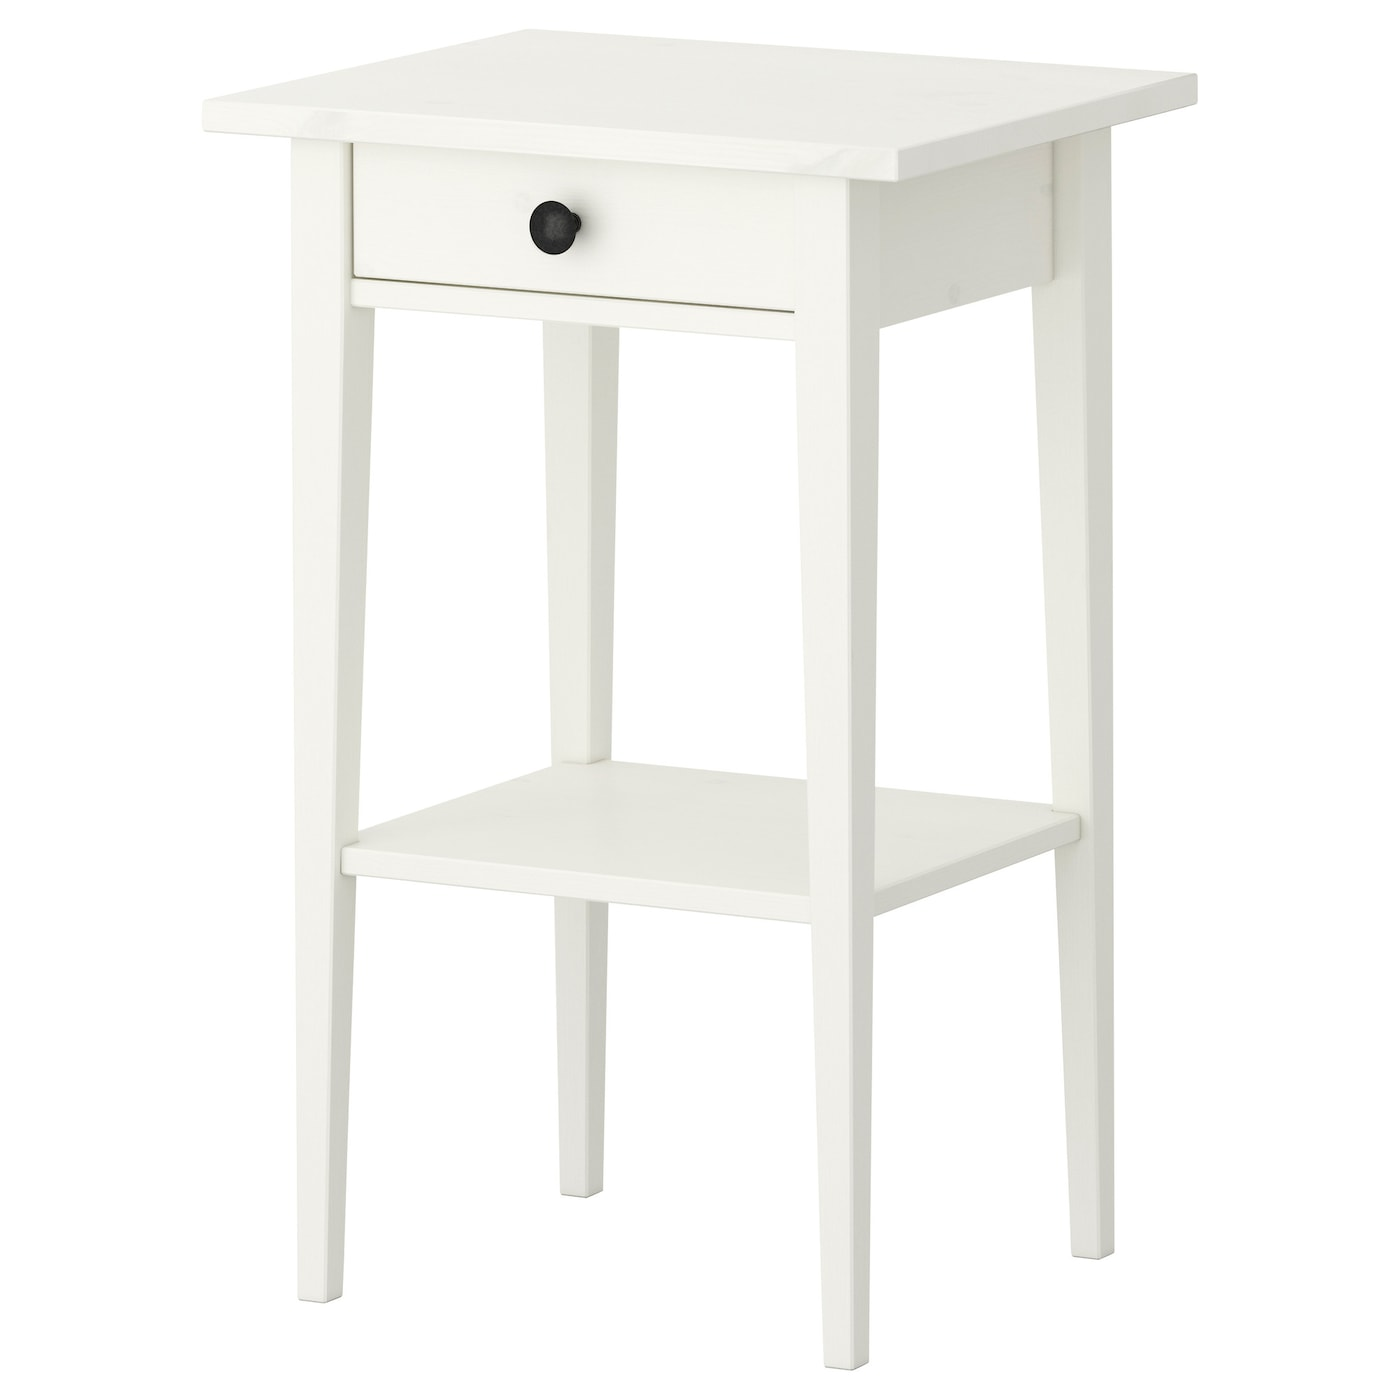 hemnes table de chevet teint blanc 46x35 cm ikea. Black Bedroom Furniture Sets. Home Design Ideas